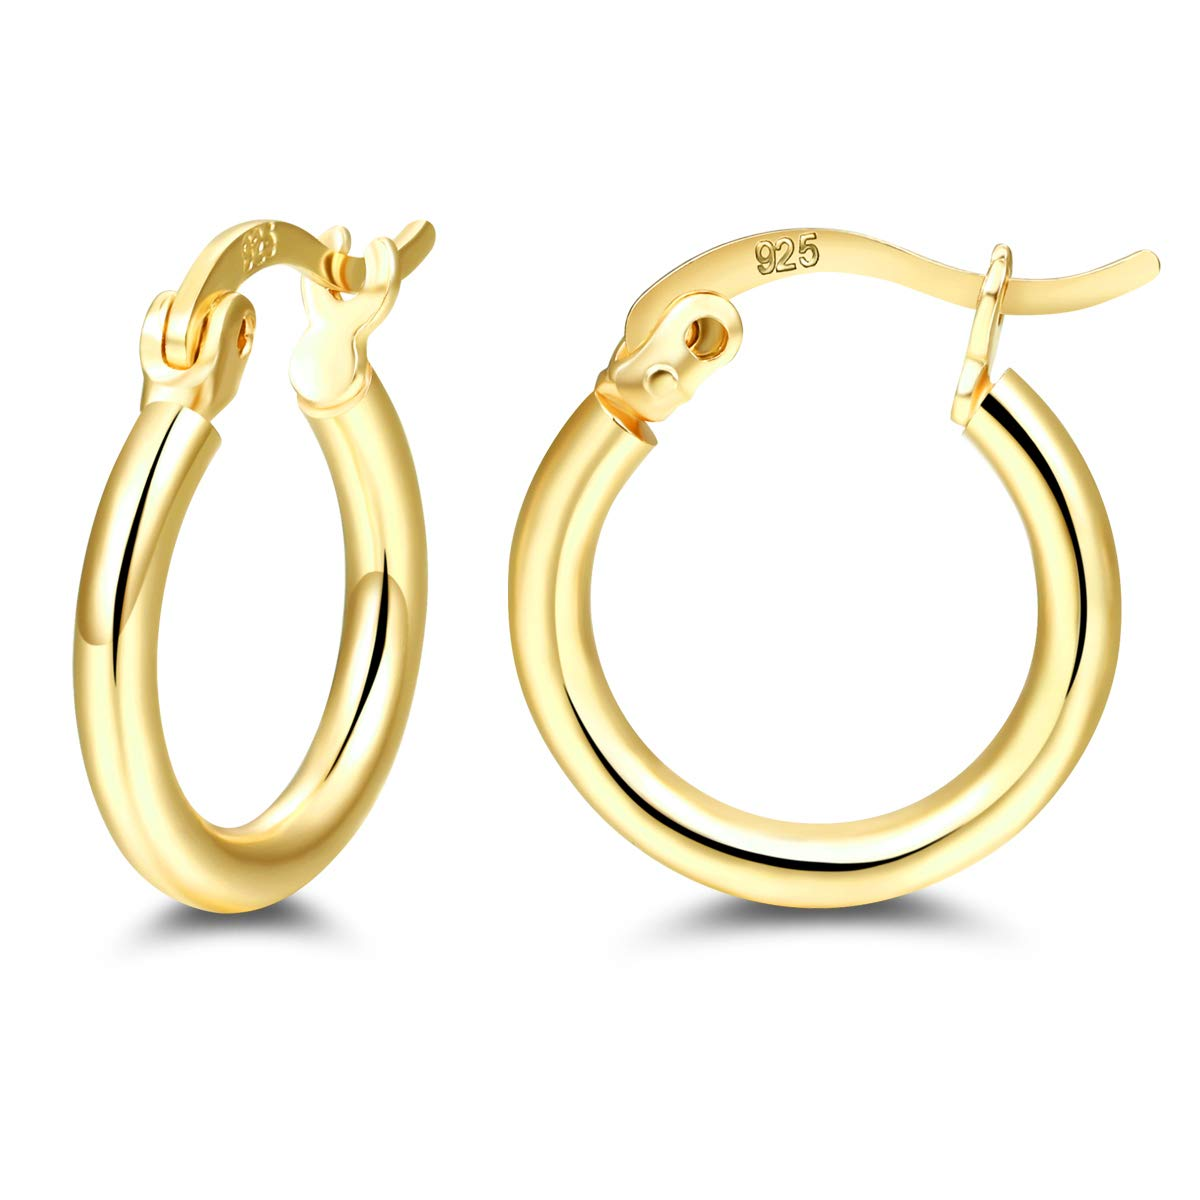 6d9abd275 Amazon.com: 925 sterling silver Small hoop Earrings, 14K Gold Plated Thin  Lightweight clip on hoops Set for women men girls gift (14mm): Jewelry